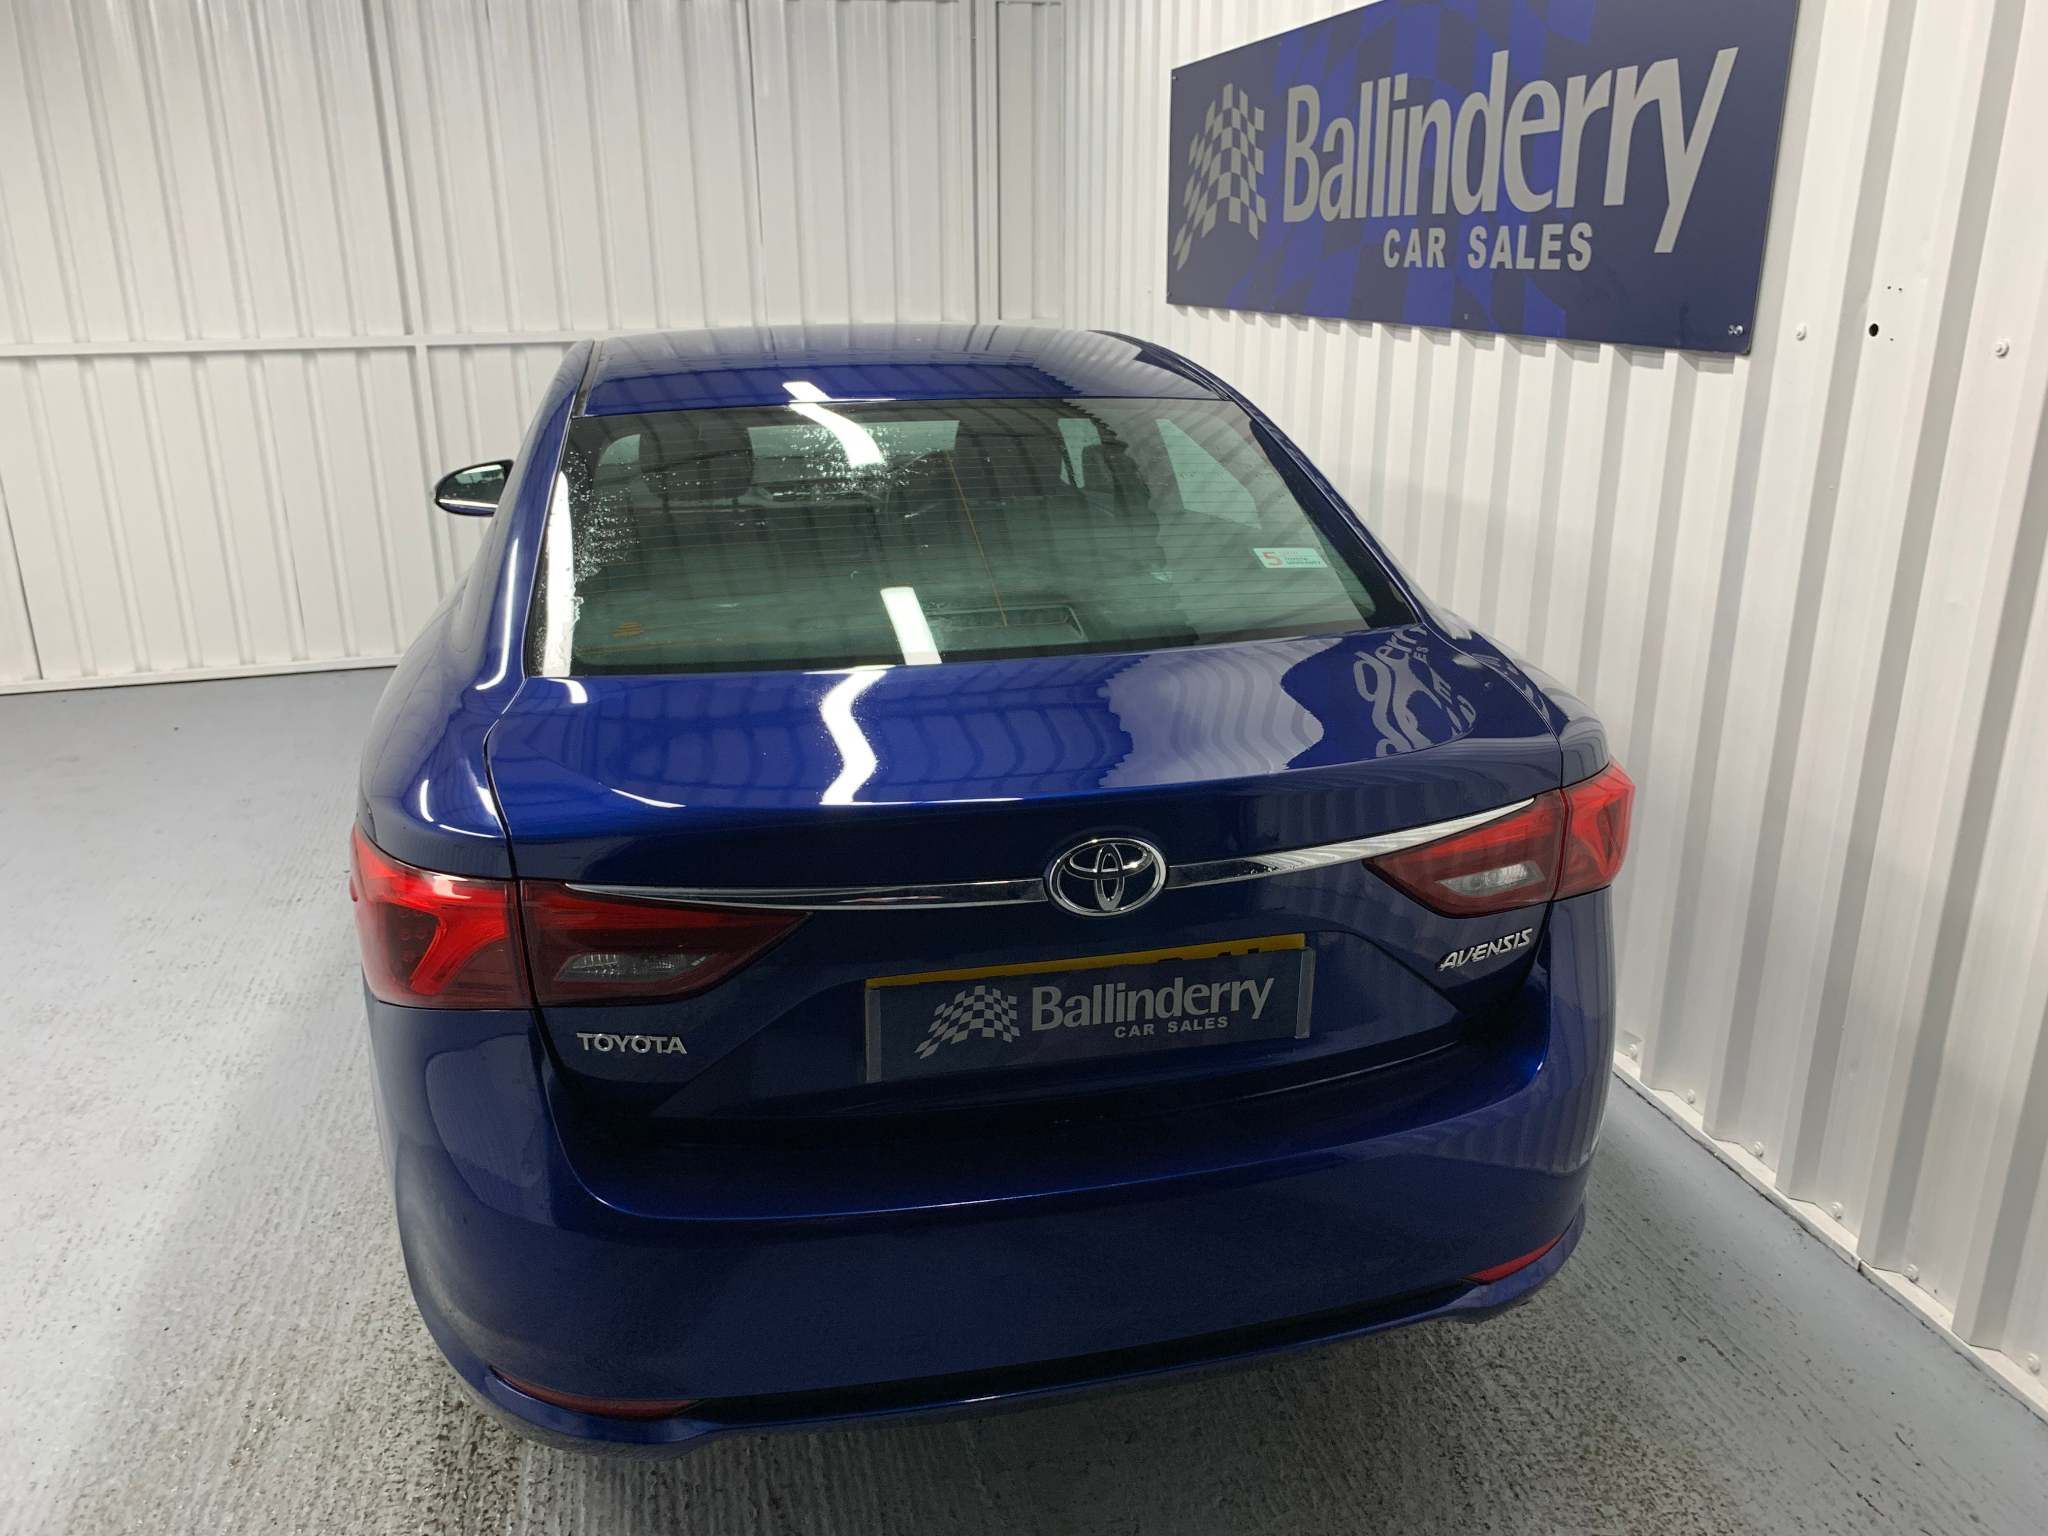 2016 TOYOTA Avensis 1.6 D-4D Active (s/s) Diesel Manual ONE OWNER-FULL HISTORY-£20 TAX – Ballinderry Car Sales Moira full